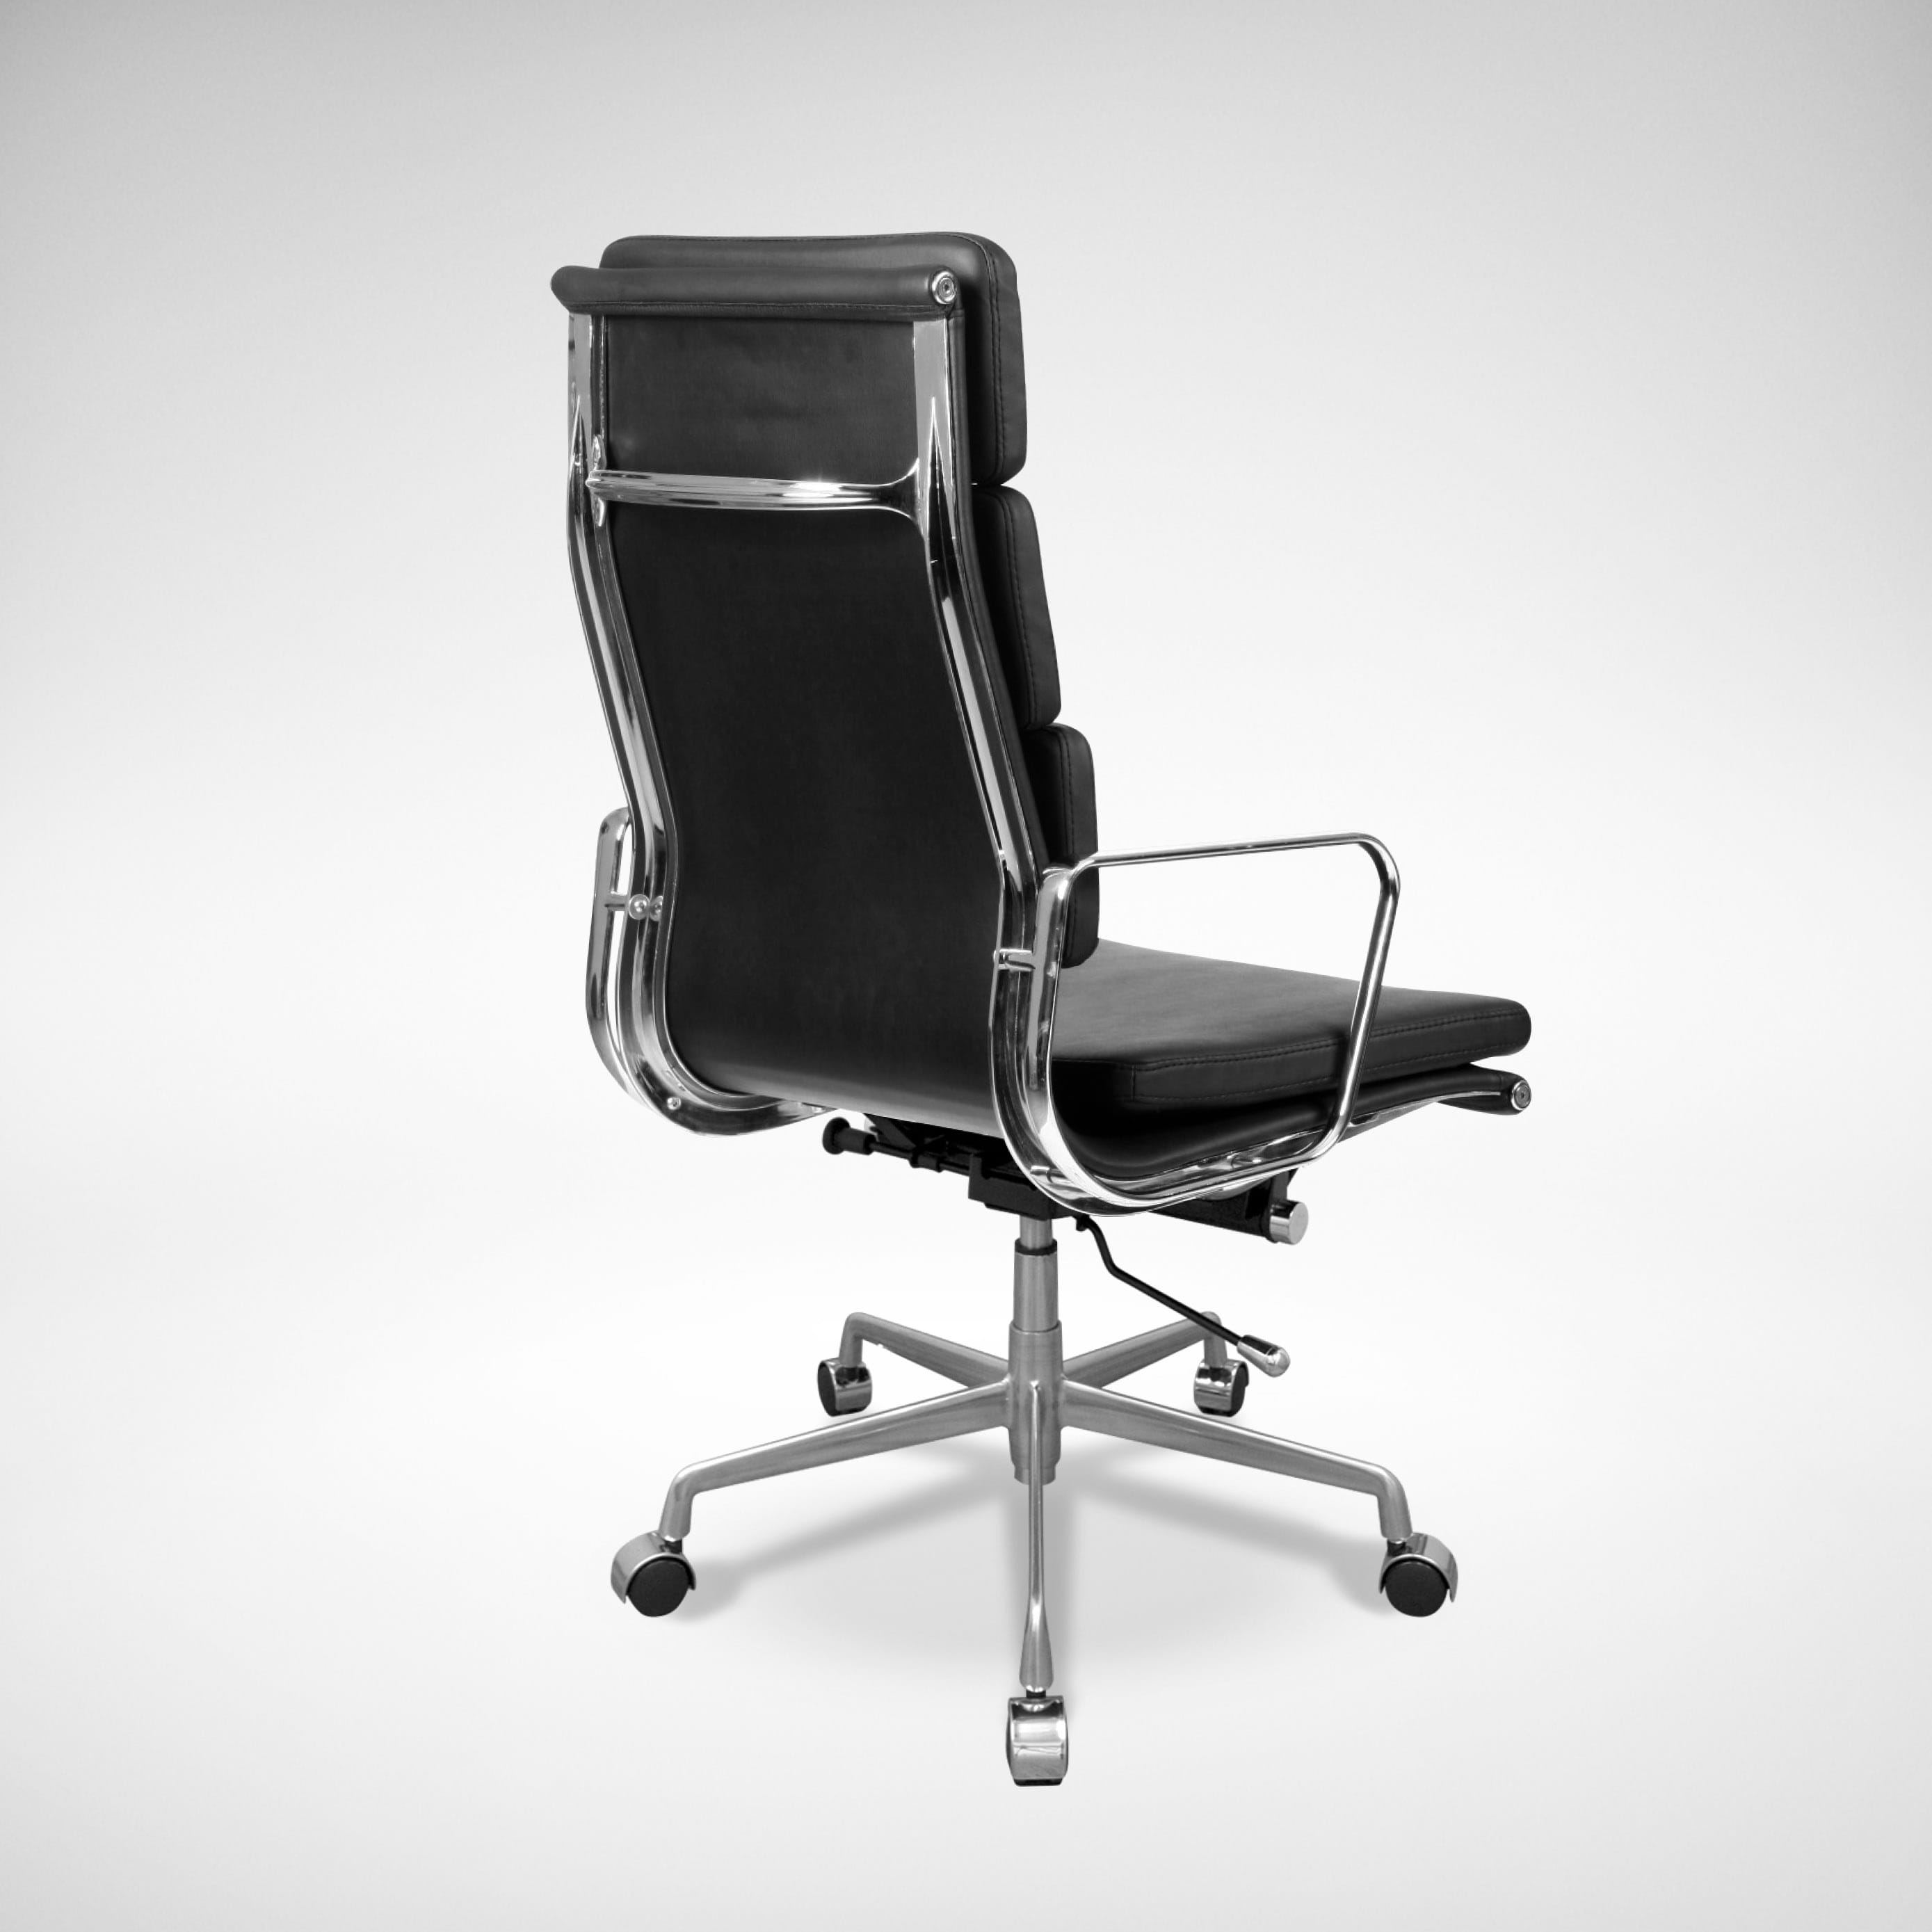 Eam Chair Eam Soft Pad Highback Office Chair Comfort Design The